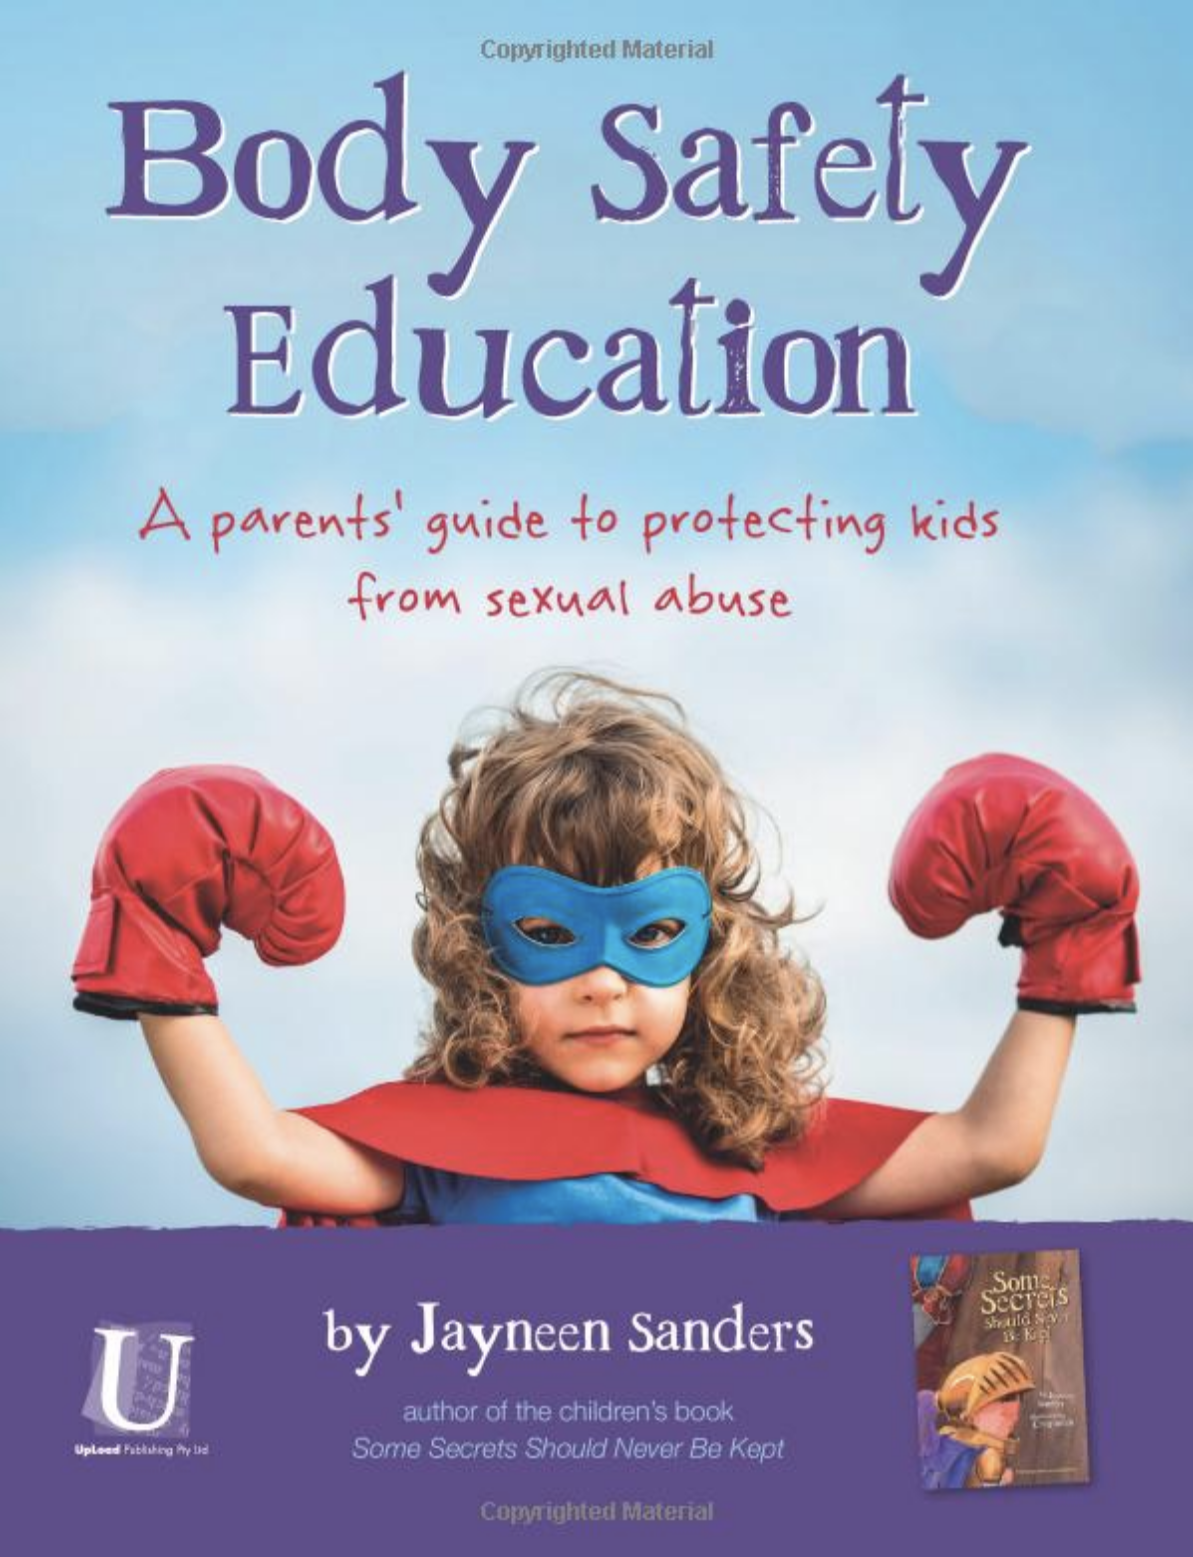 BodySafetyEducation.png